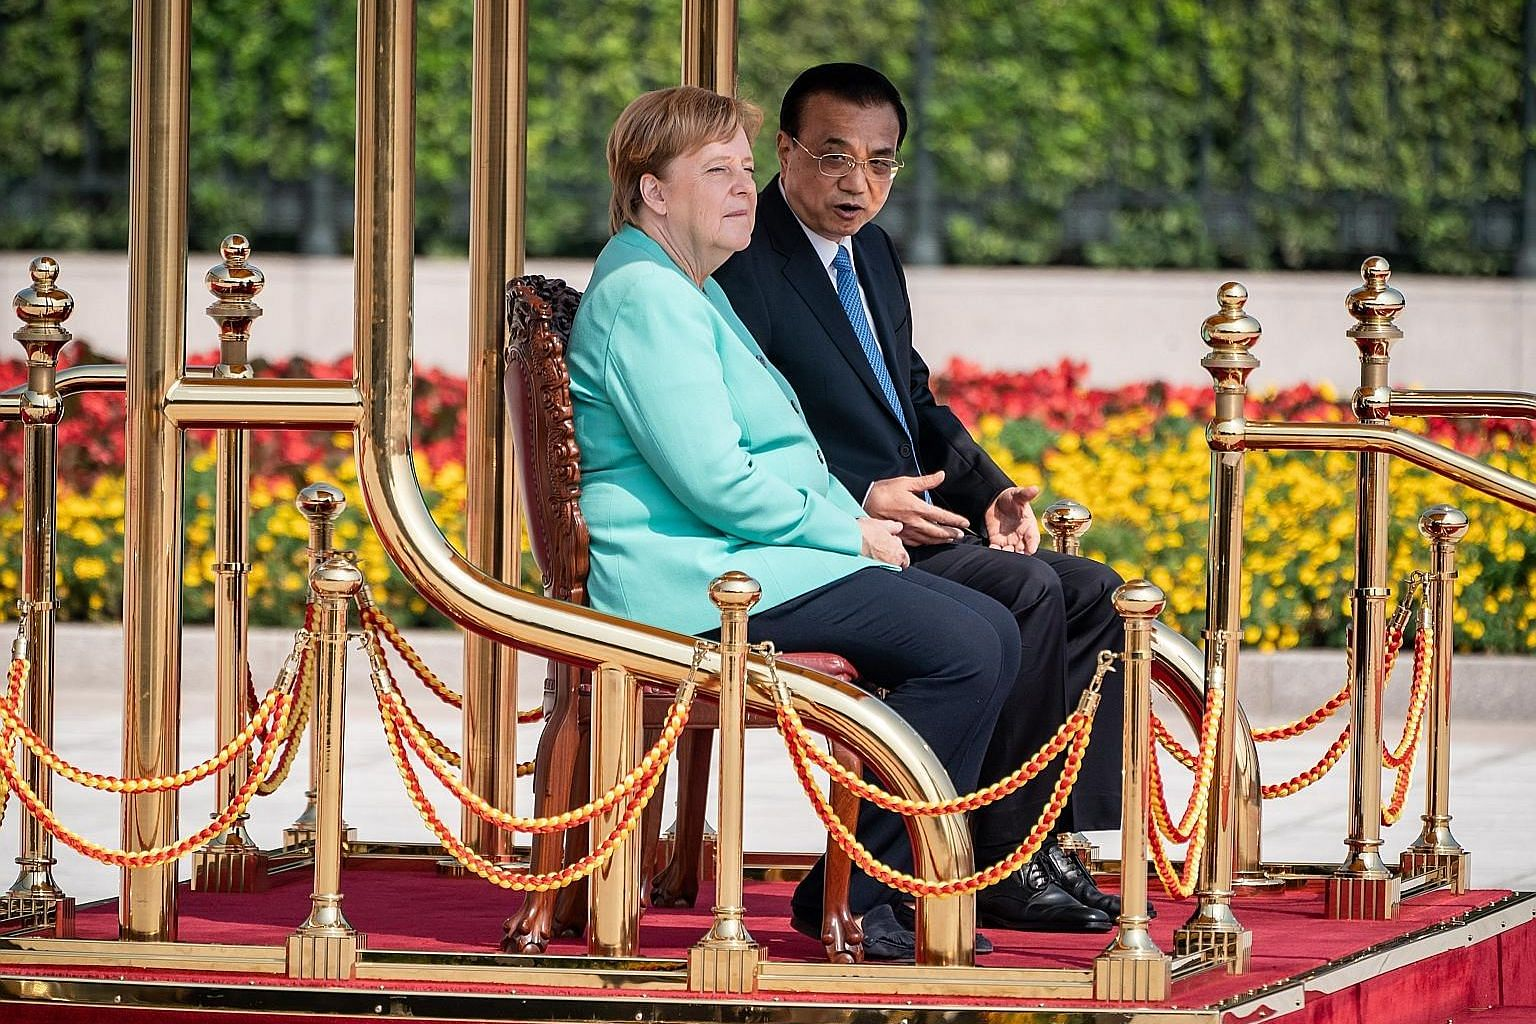 German Chancellor Angela Merkel at a welcome ceremony with Chinese Prime Minister Li Keqiang before their meeting at the Great Hall of the People in Beijing yesterday.